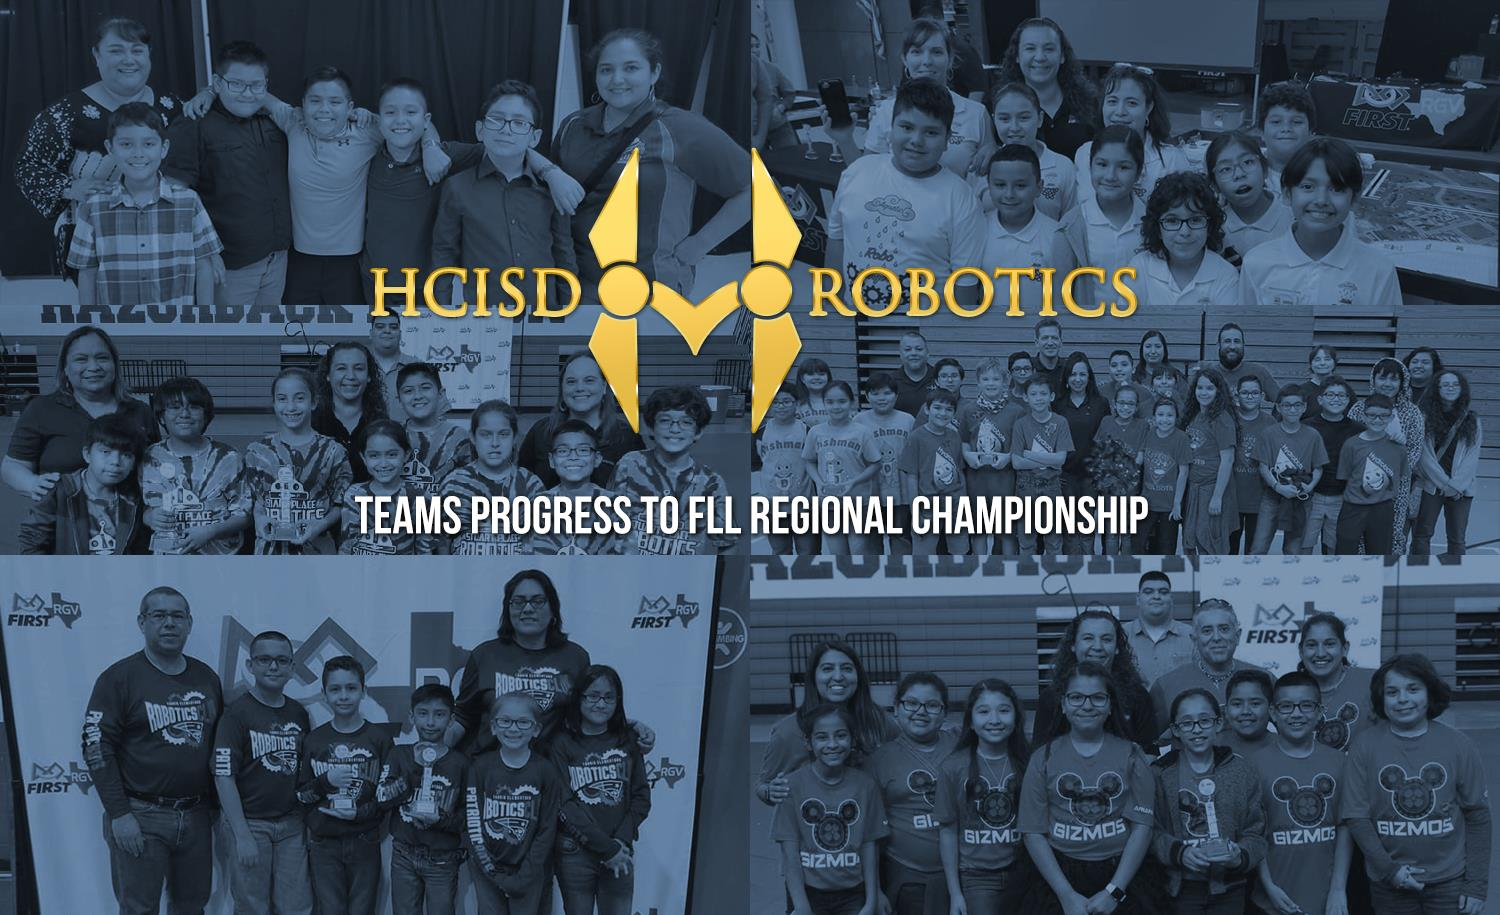 HCISD Robotics teams progress to FLL Regional Championship